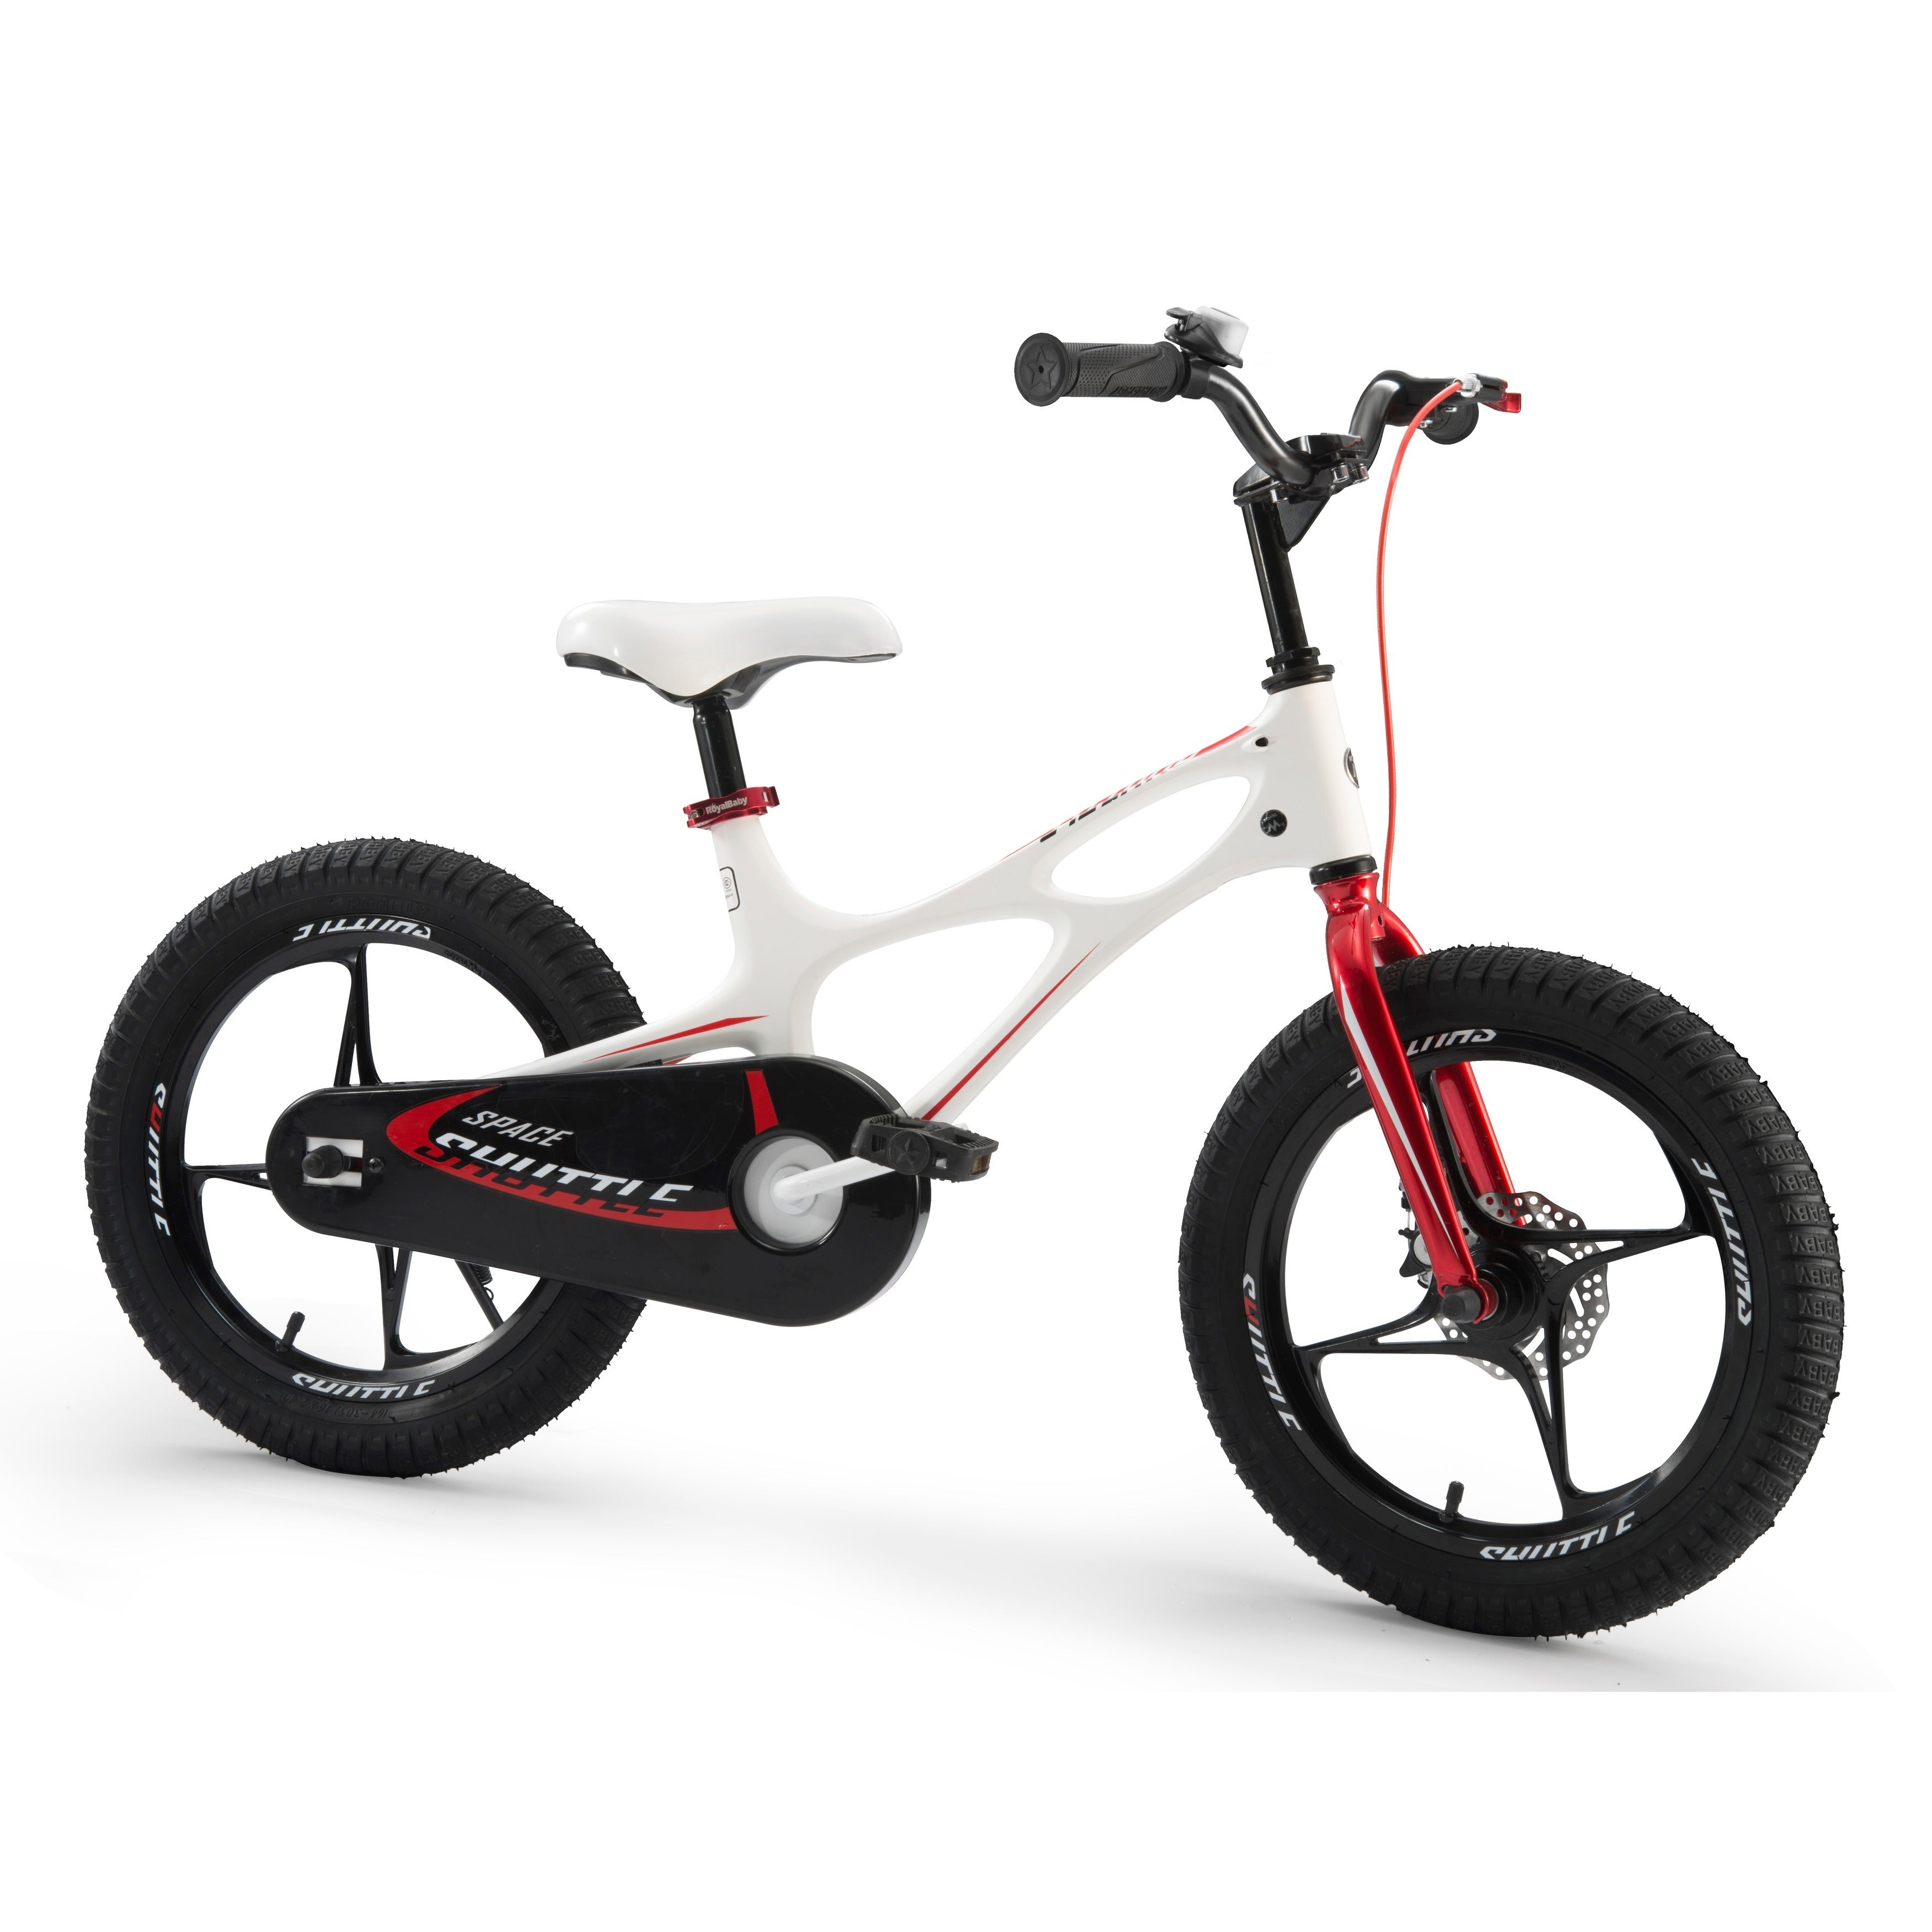 ac1ef75973e8 Shop RoyalBaby Magnesium Space Shuttle 16-inch Kids' Bike - 16 - Free  Shipping Today - Overstock - 13546384